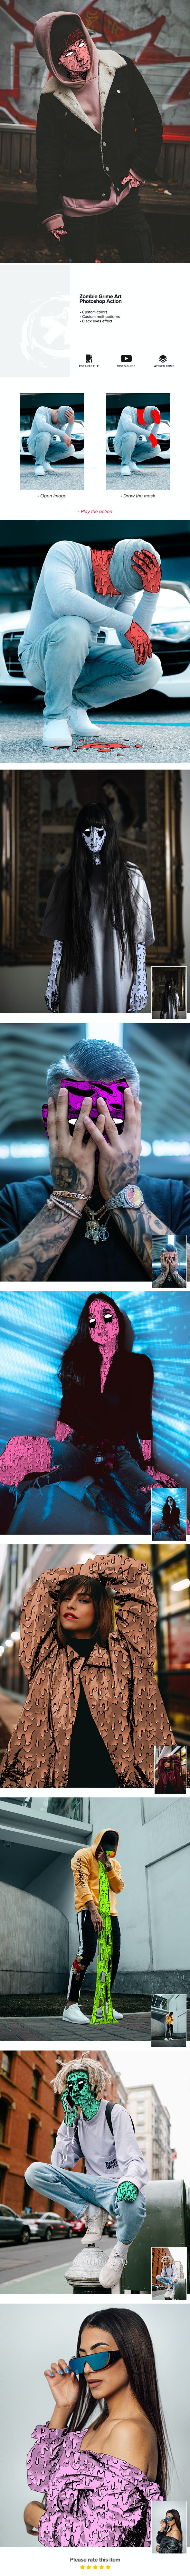 Zombie Grime Art Photoshop Action - Photo Effects Actions